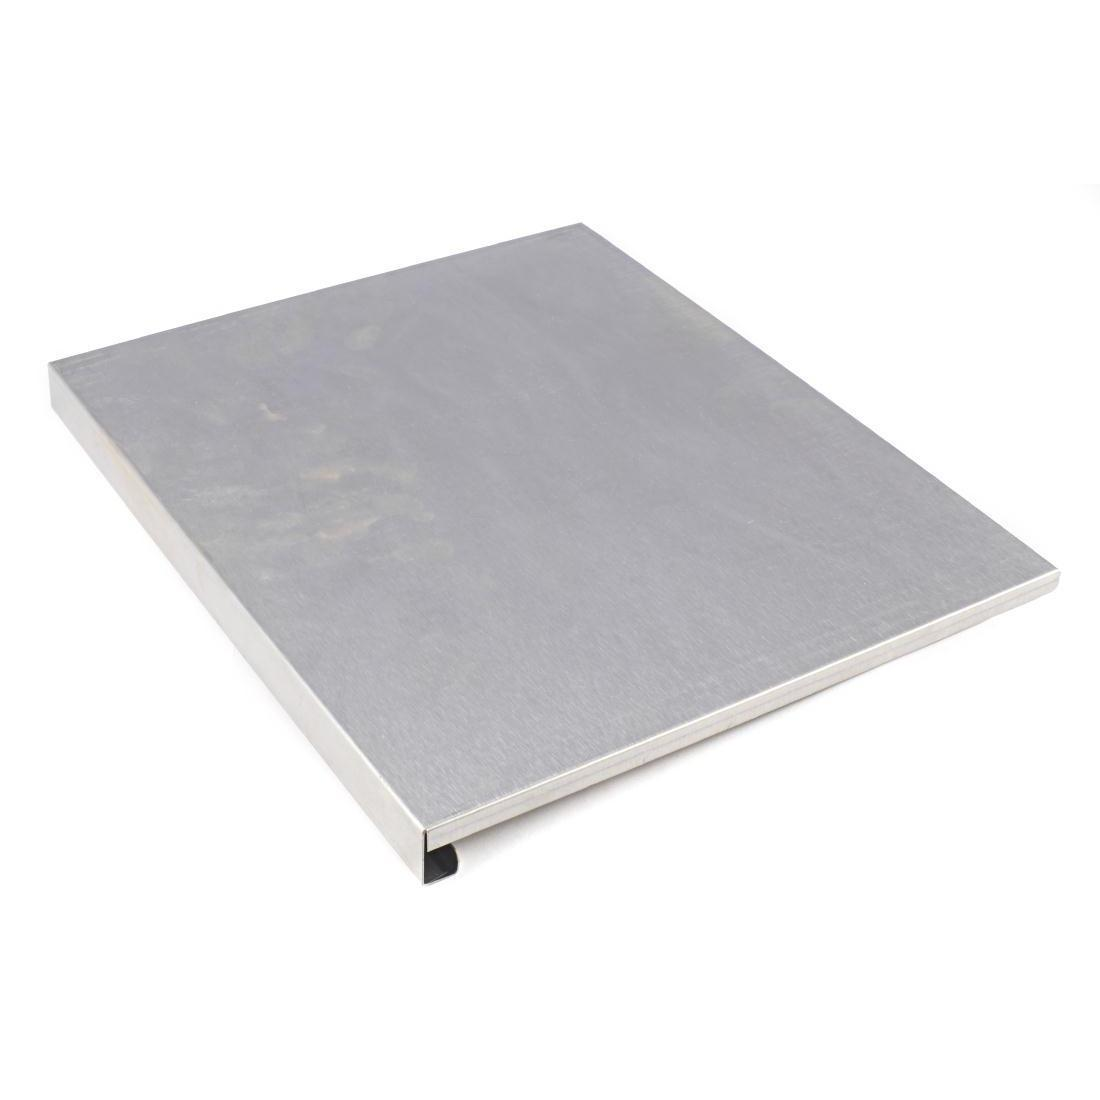 Buffalo Crumb/Waste Tray - N476